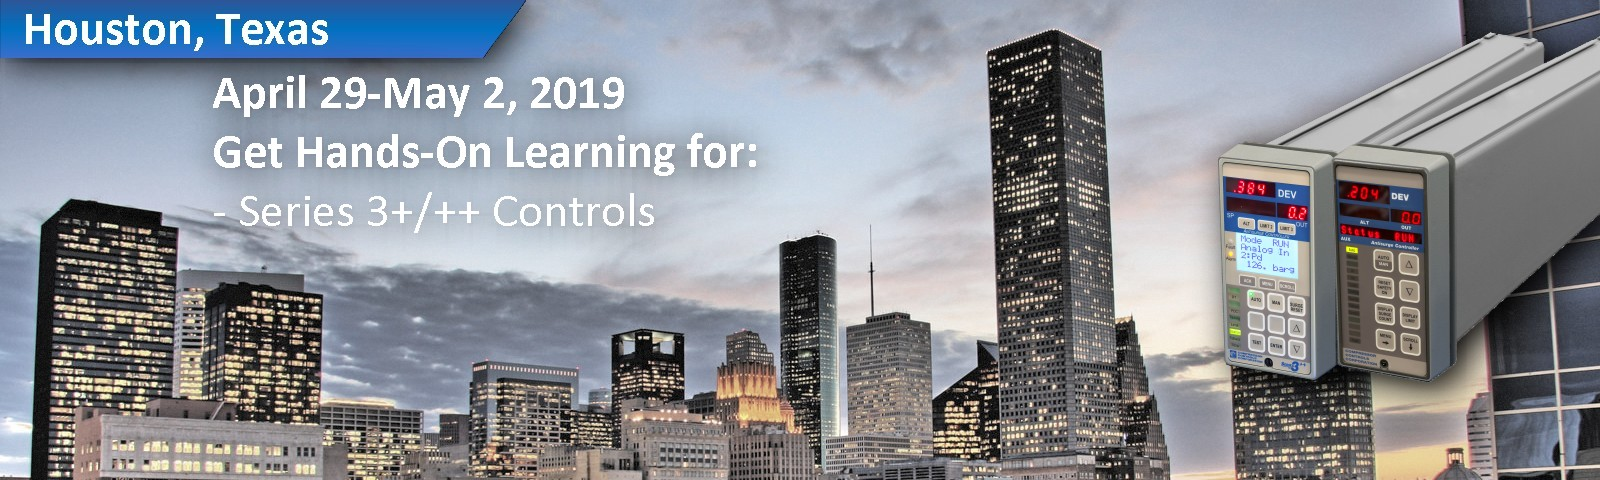 2019 Houston S3+/++ Regional Training | <a  data-cke-saved-href='https://learning.cccglobal.com/ProductDetails.aspx?ProductID=253' href='https://learning.cccglobal.com/ProductDetails.aspx?ProductID=253'>Register Now</a>